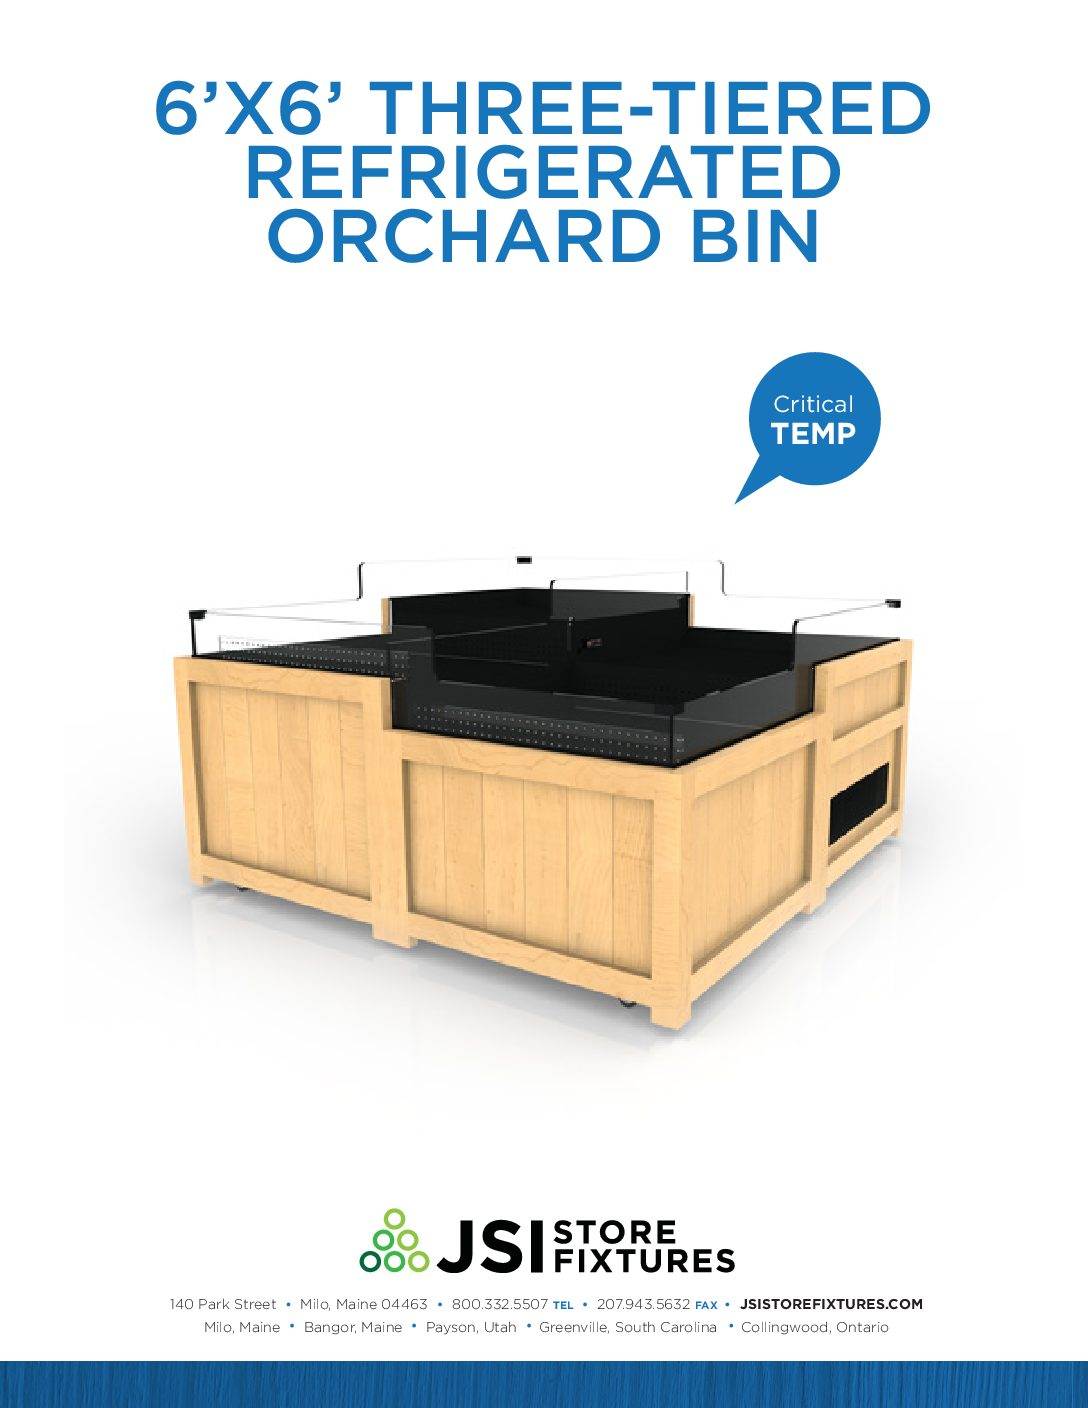 6'x6' Three-Tiered Refrigerated Orchard Bin Spec Sheet